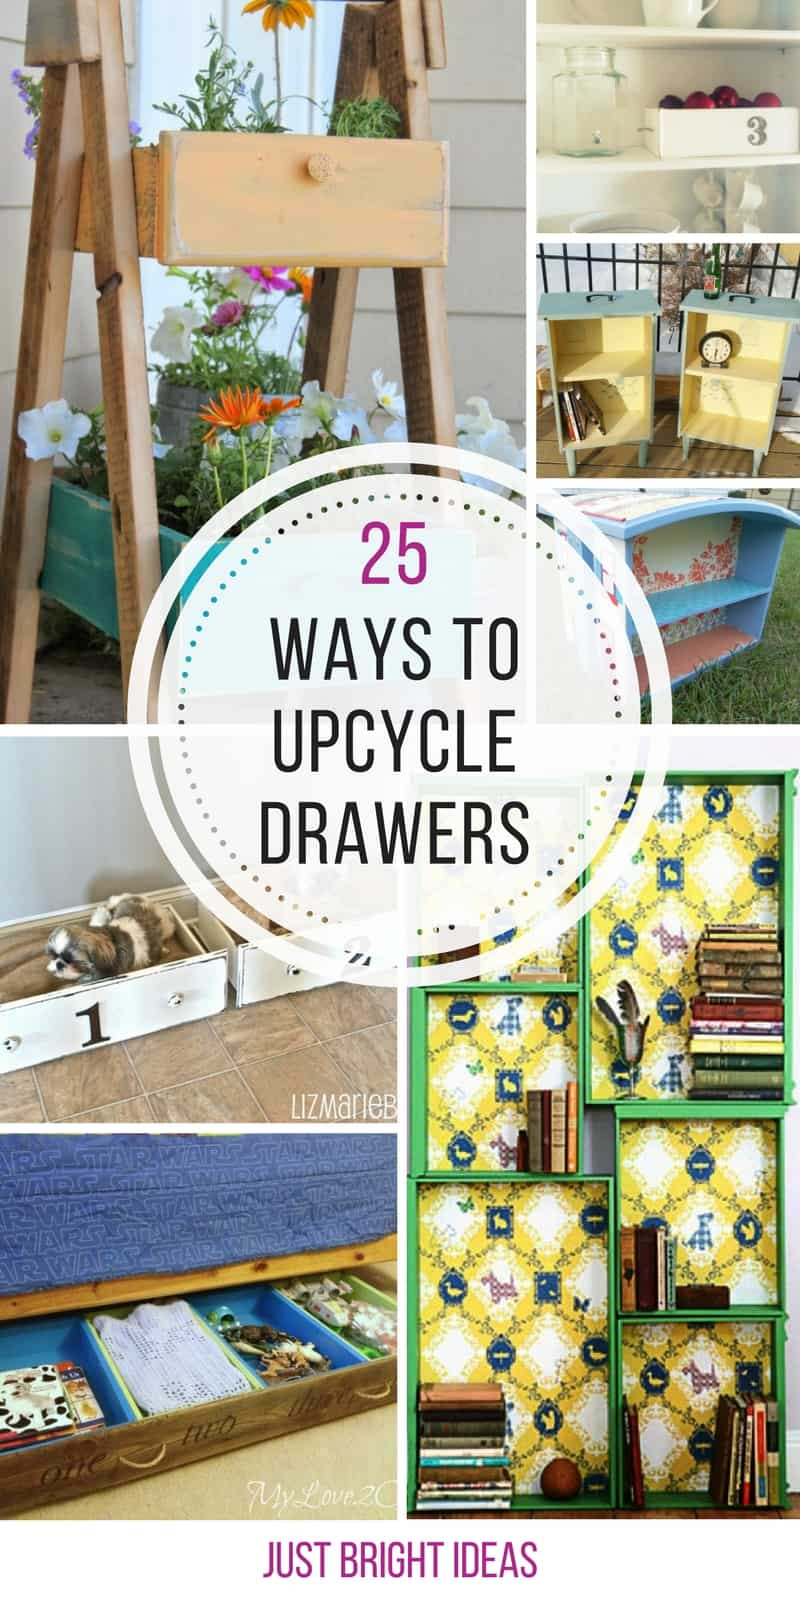 Loving these upcycled drawer projects - thanks for sharing!